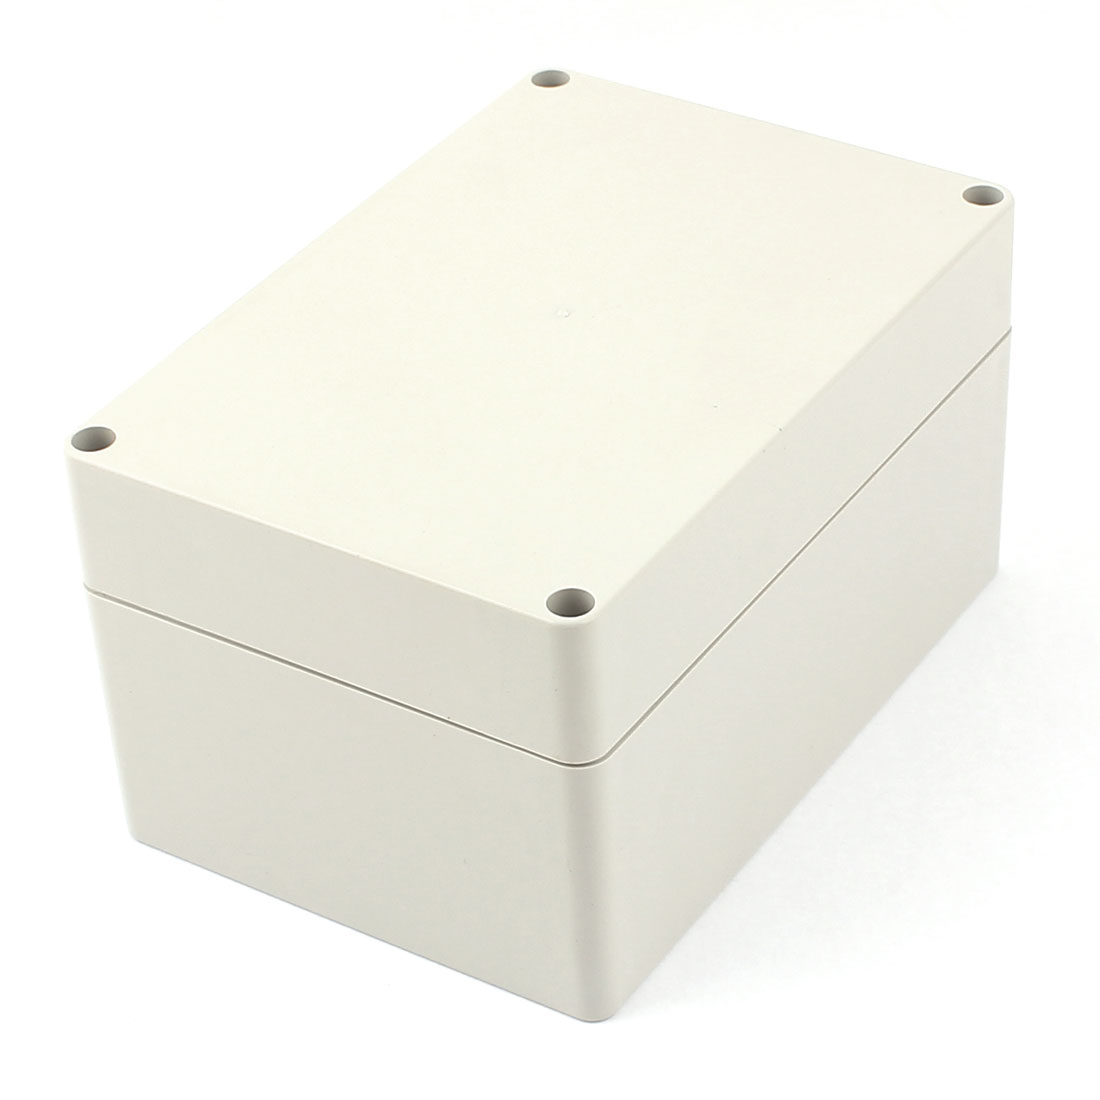 Outdoor Plastic Dustproof IP65 Enclosure Adaptable Junction Box Case 200x120x56mm